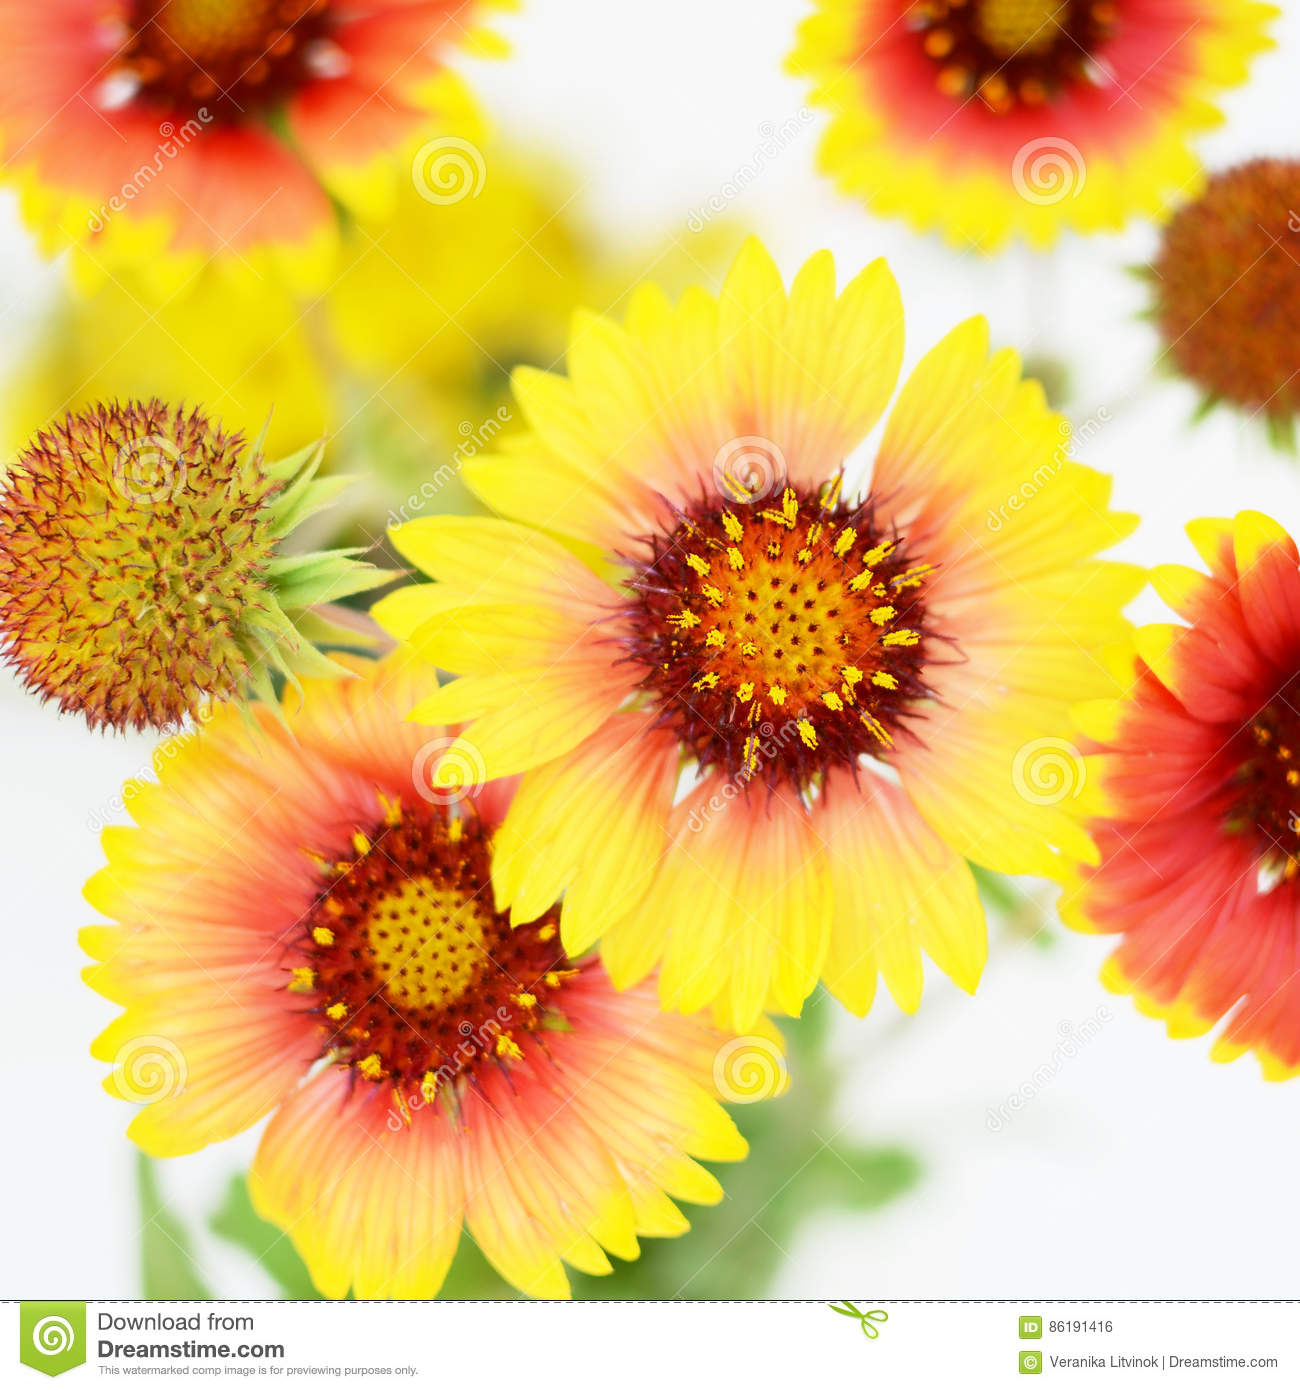 Echinacea Red And Yellow Flowers Stock Photo Image Of Echinacea